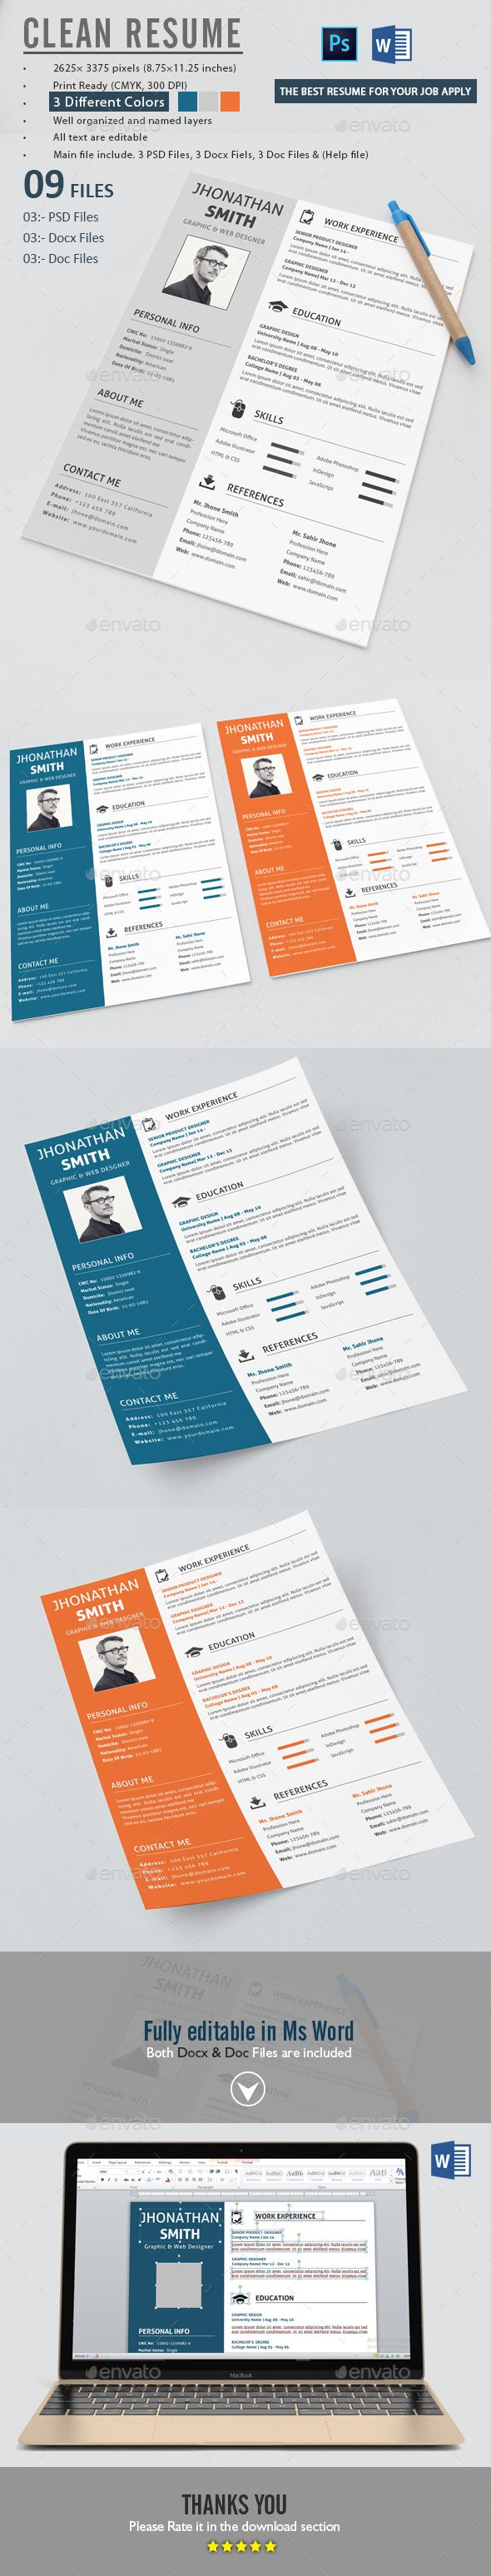 Cv Templates Design%0A Clean Resume